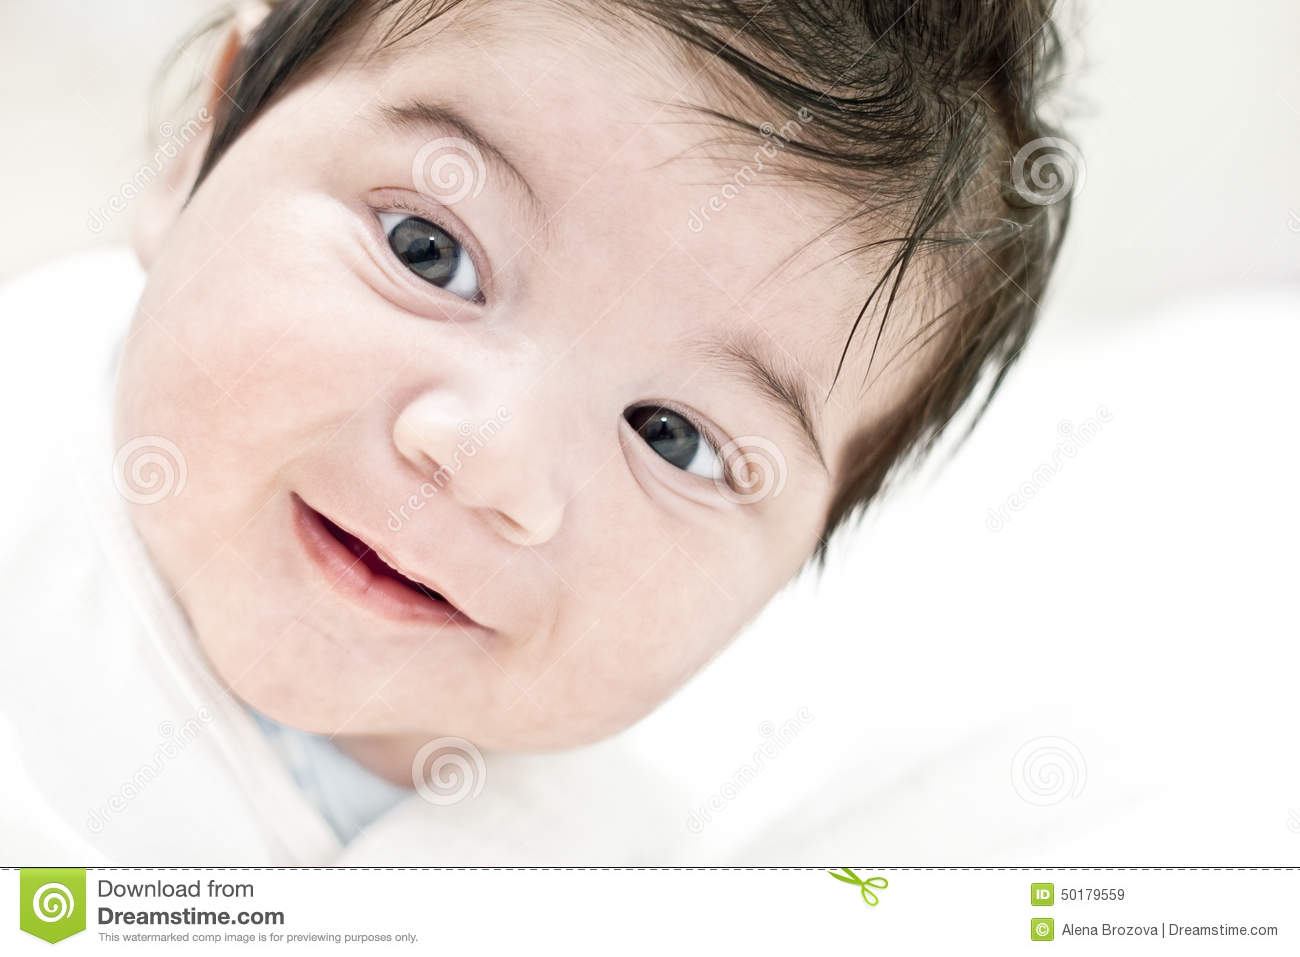 Beautiful Cute Happy Smiling Laughing Baby Stock Photo ... |Cute Smiling Baby Faces